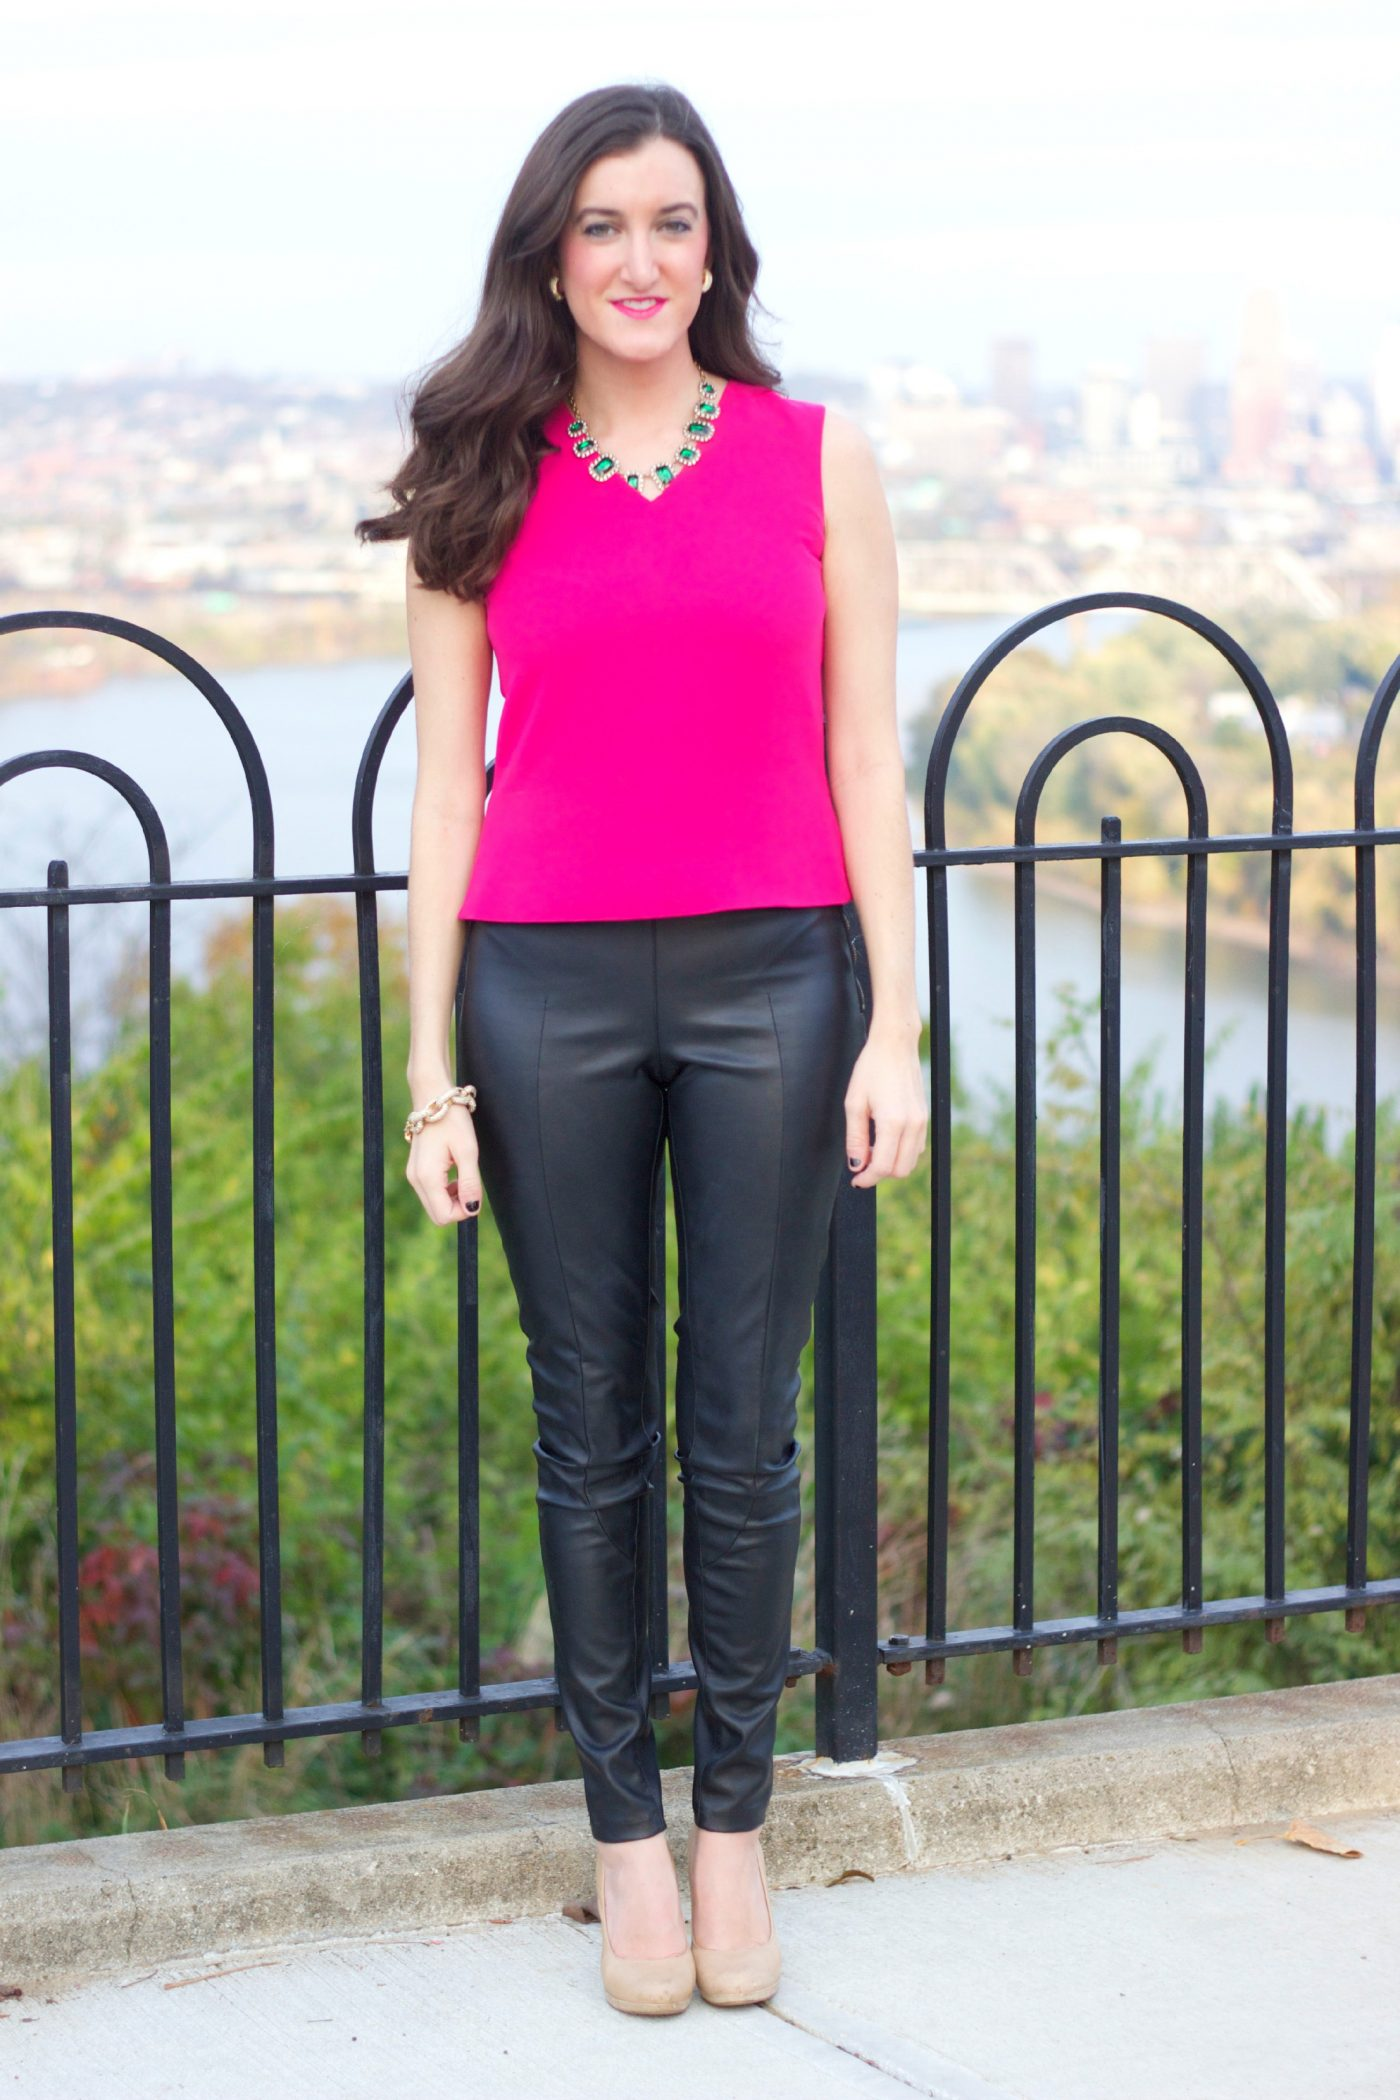 How To Style Leather Pants with Pink Top